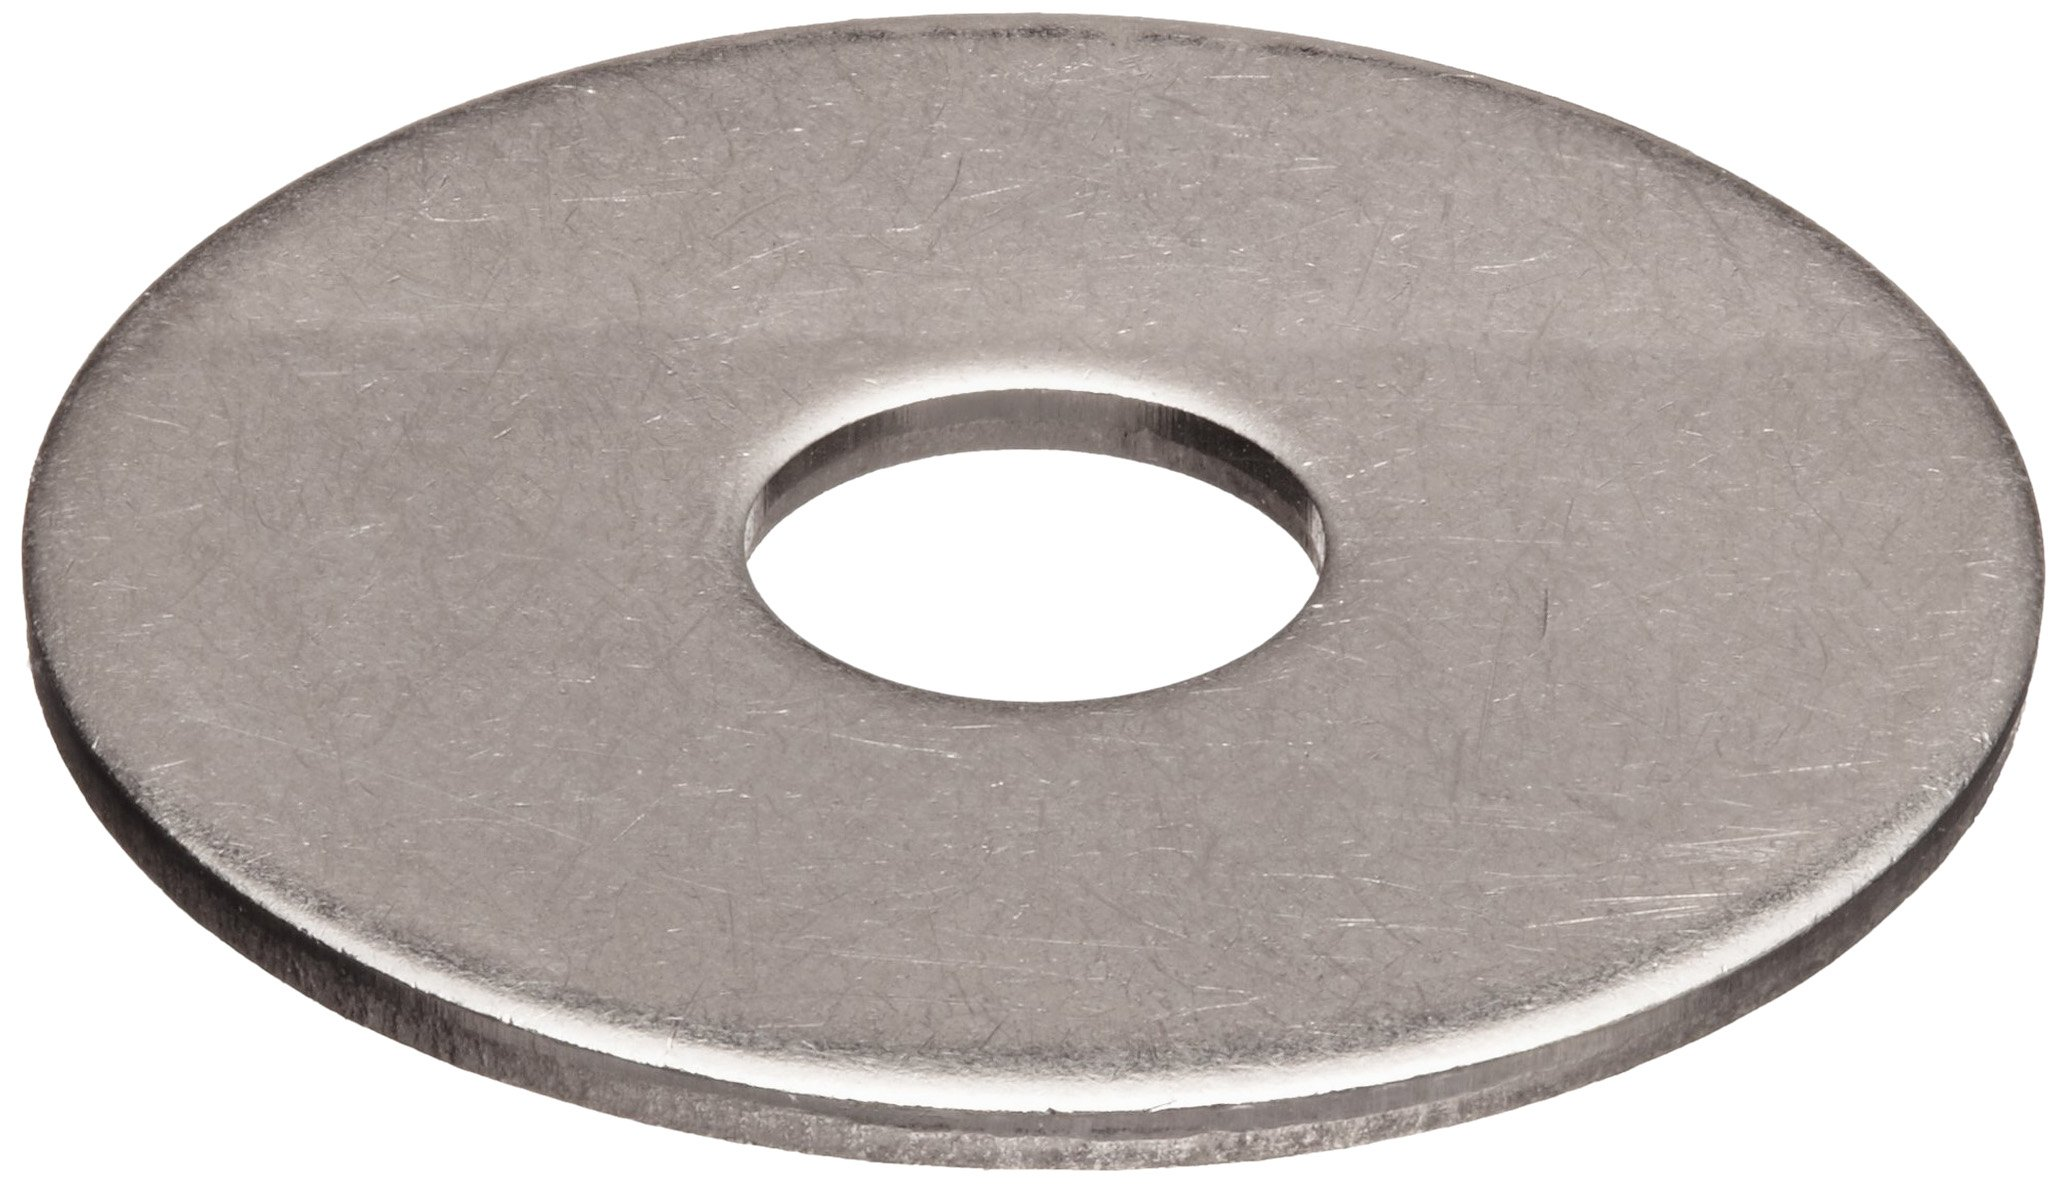 18-8 Stainless Steel Flat Washer, 1/4'' Hole Size, 0.281'' ID, 2'' OD, 0.062'' Nominal Thickness, Made in US (Pack of 10)